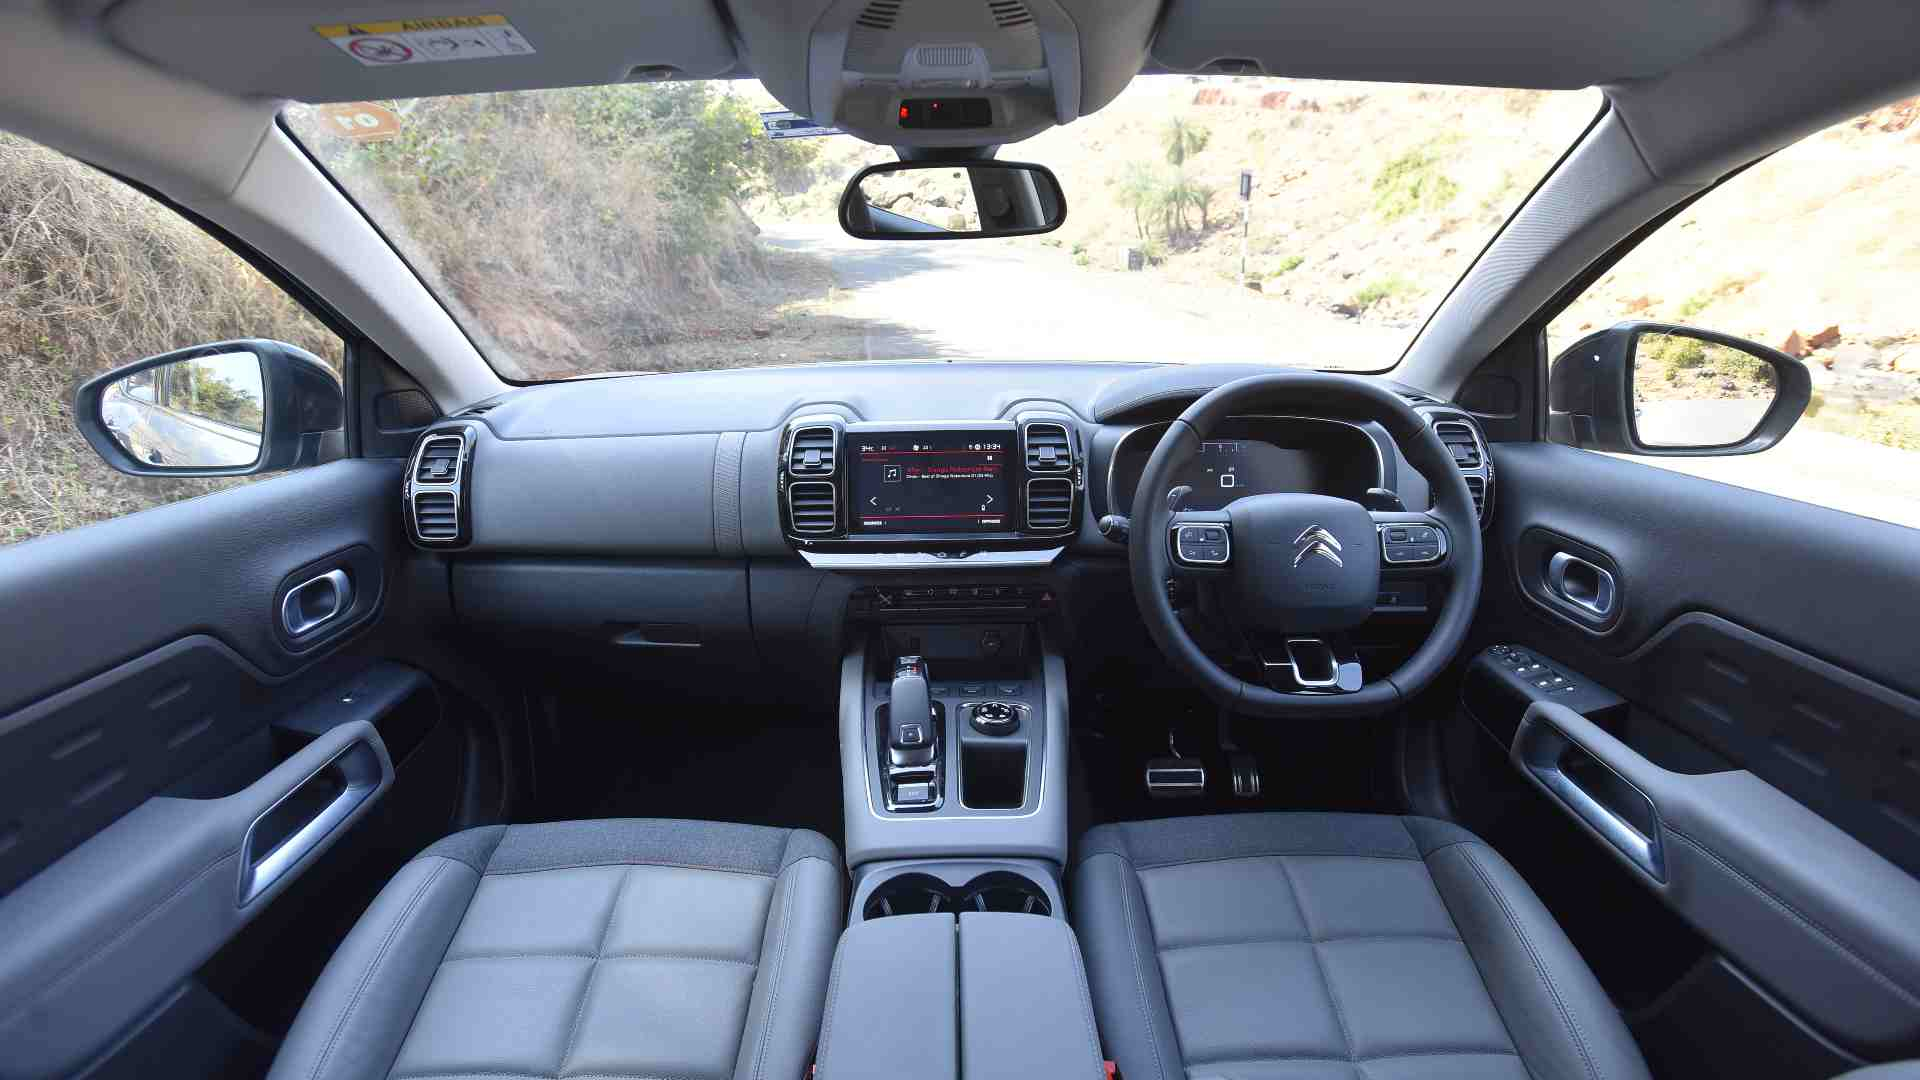 The C5 Aircross' interior has some feel-good bits, but it's not exactly luxurious. Image: Overdrive/Anis Shaikh